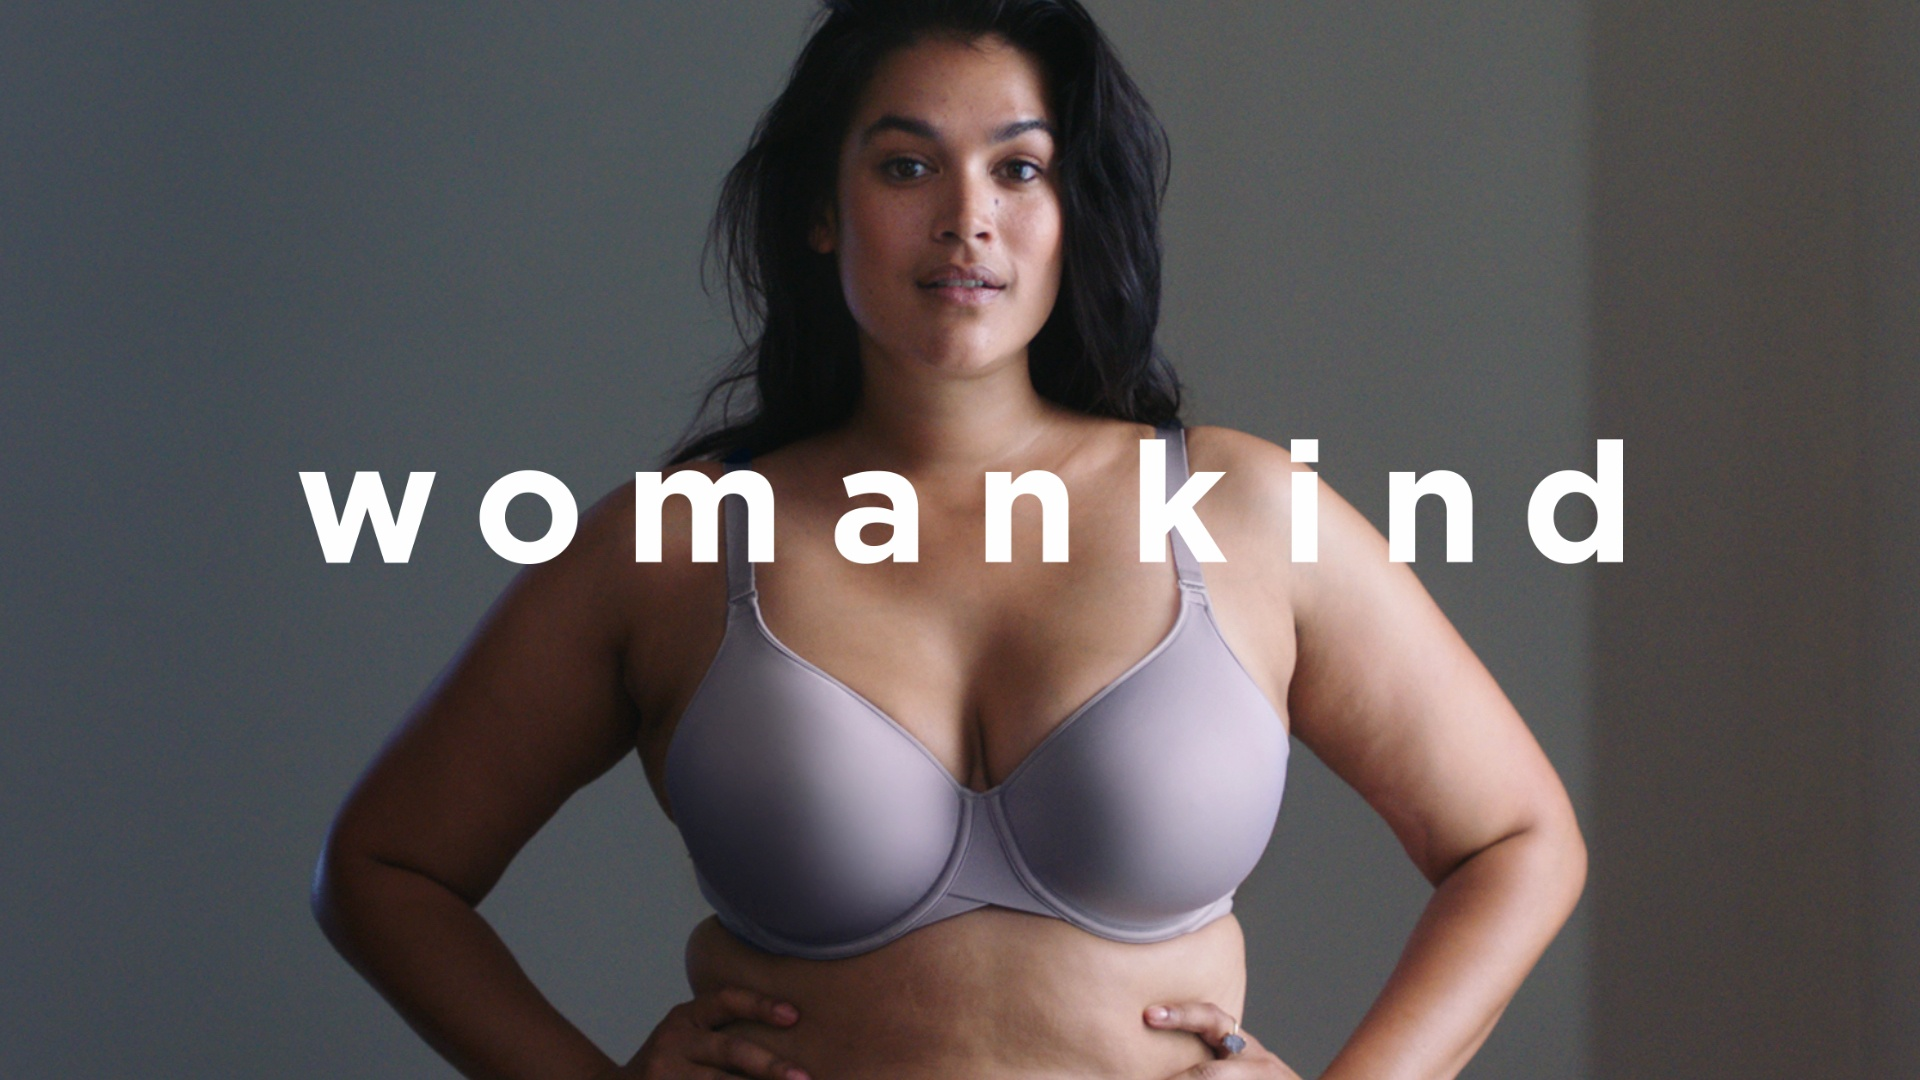 Image Media for Womankind